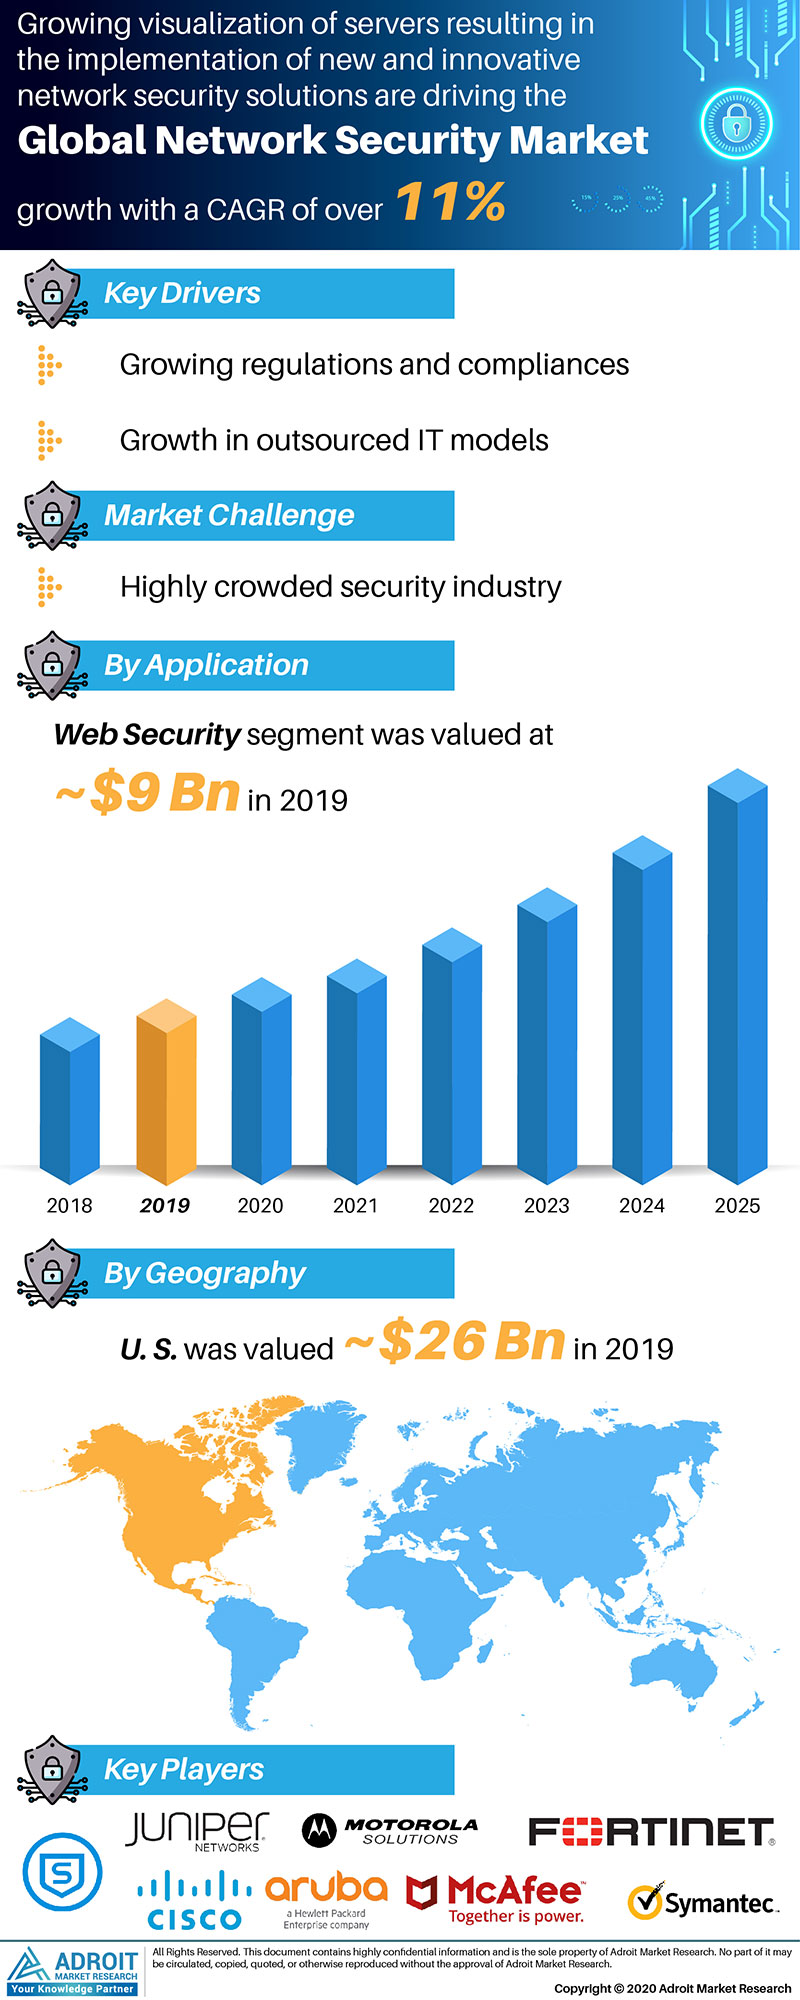 Network Security Market Size 2017 By Application, Product, Region and Forecast 2019 to 2025